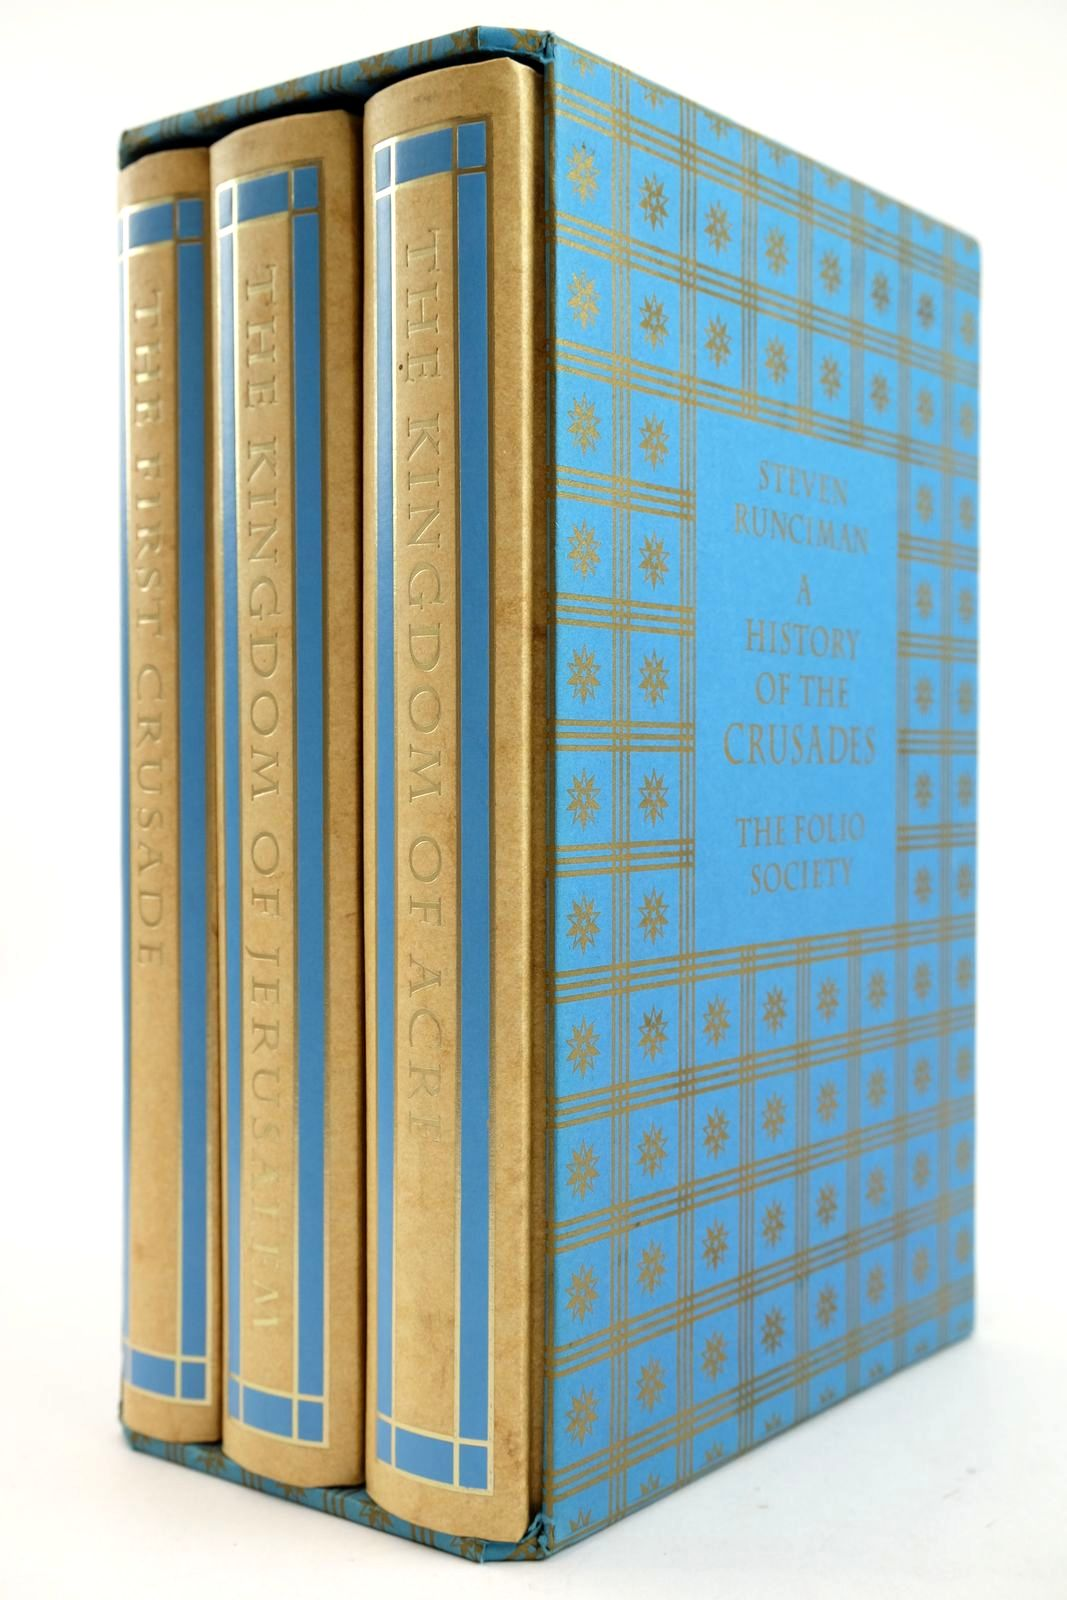 Photo of A HISTORY OF THE CRUSADES (3 VOLUMES) written by Runciman, Steven published by Folio Society (STOCK CODE: 2132834)  for sale by Stella & Rose's Books